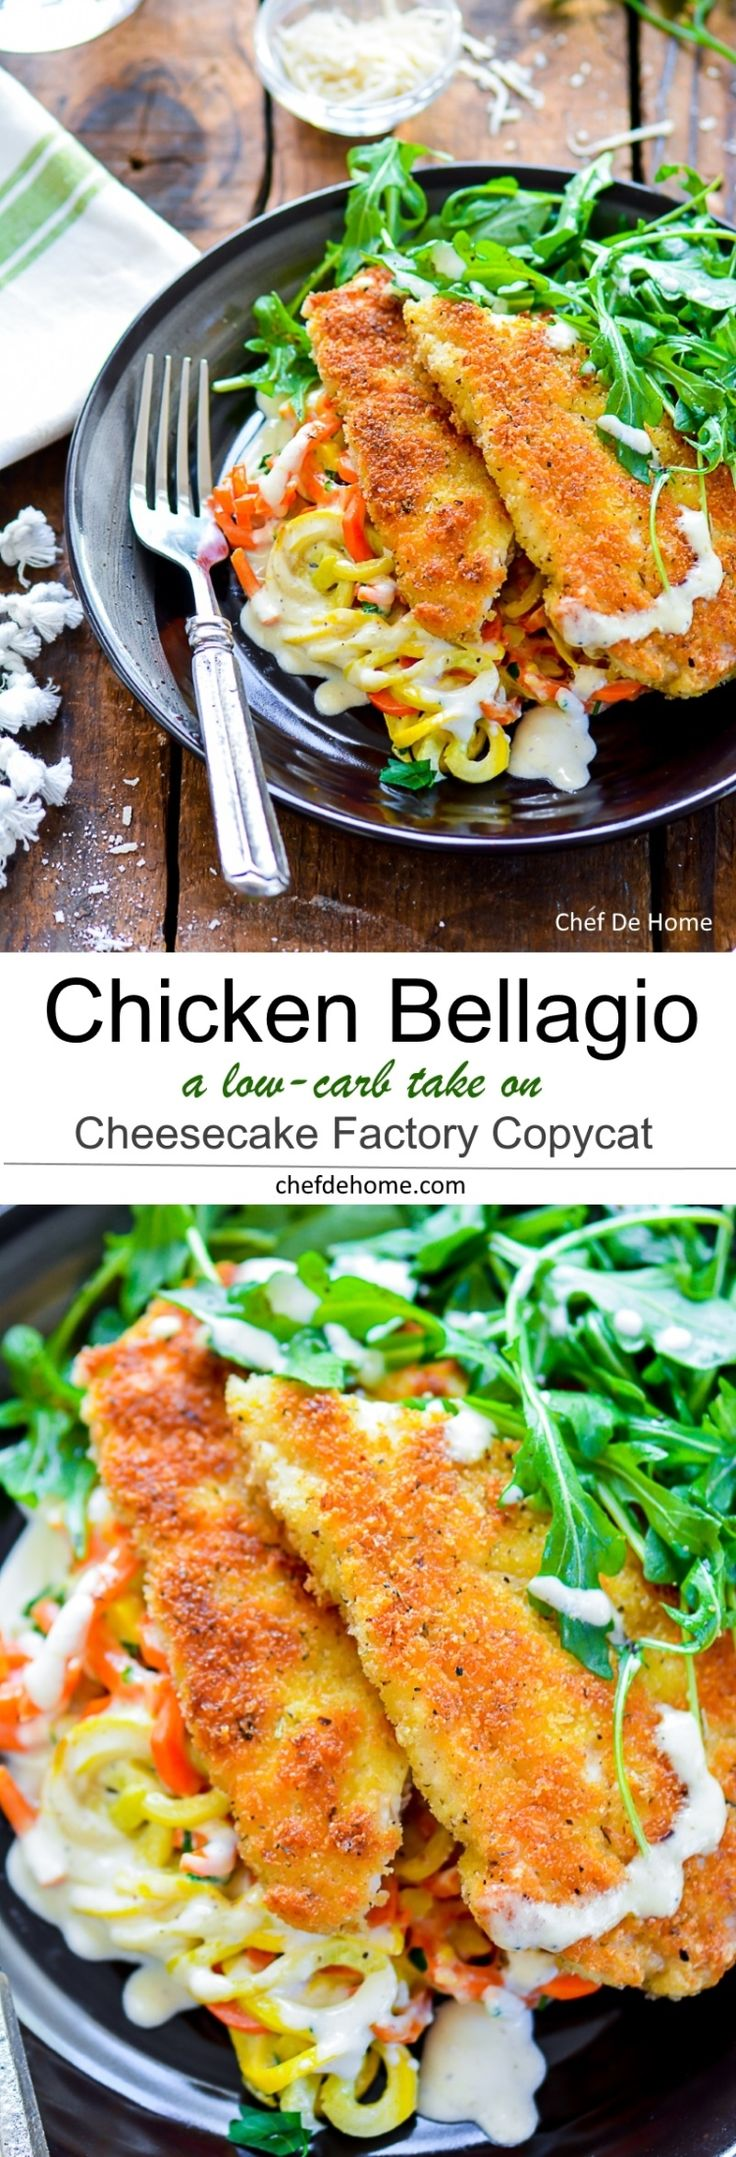 Chicken Bellagio - Cheesecake Factory Copycat. This recipe is low-carb take on Chicken Bellagio with veggie squash and carrots pasta coated in silky Parmesan Cream Sauce and topped with crispy pan-fried all white-meat chicken. A 30+ dollar dinner at home for your special Valentine.